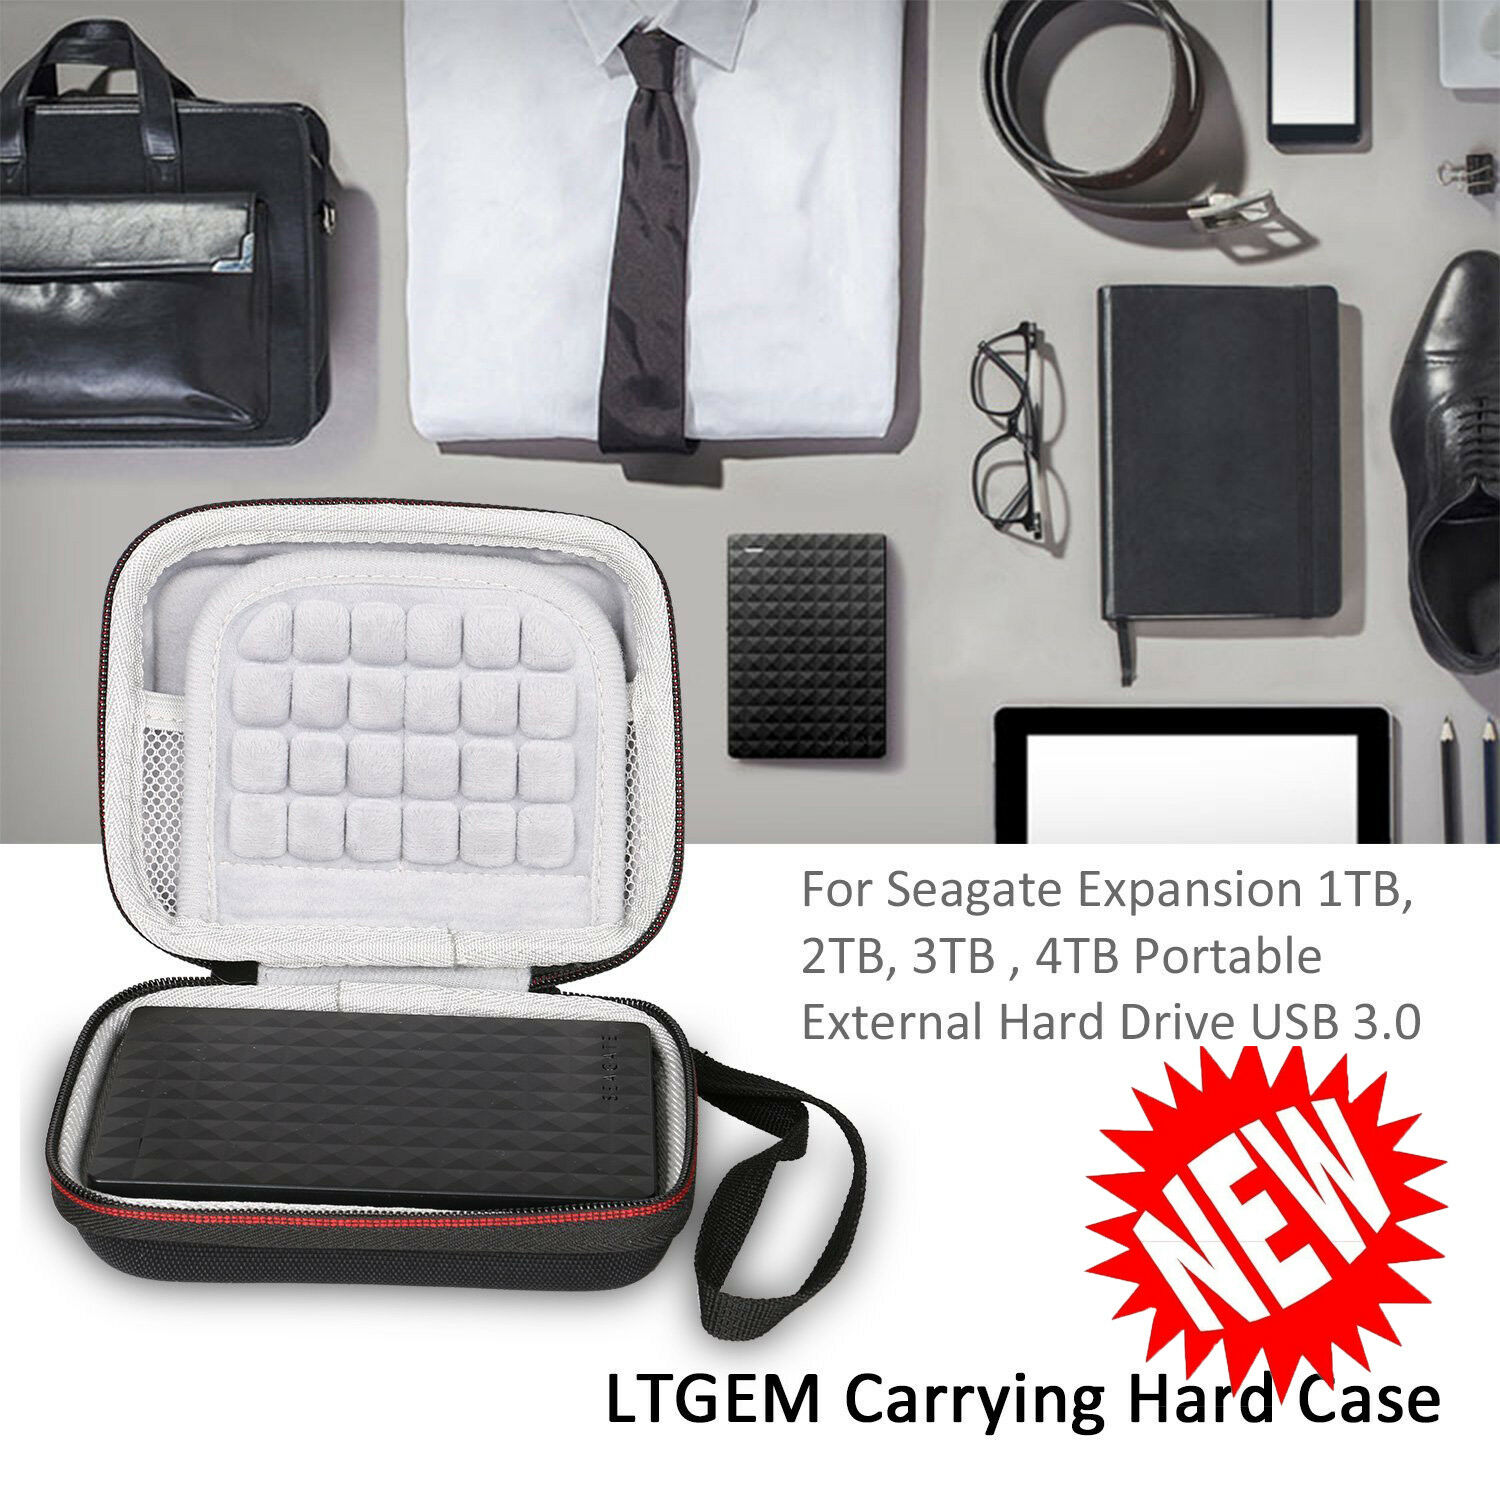 Ltgem Case For Seagate Expansion Wd My Passport Portable External 4tb Usb 30 Free Softcase Harddisk Norton Secured Powered By Verisign